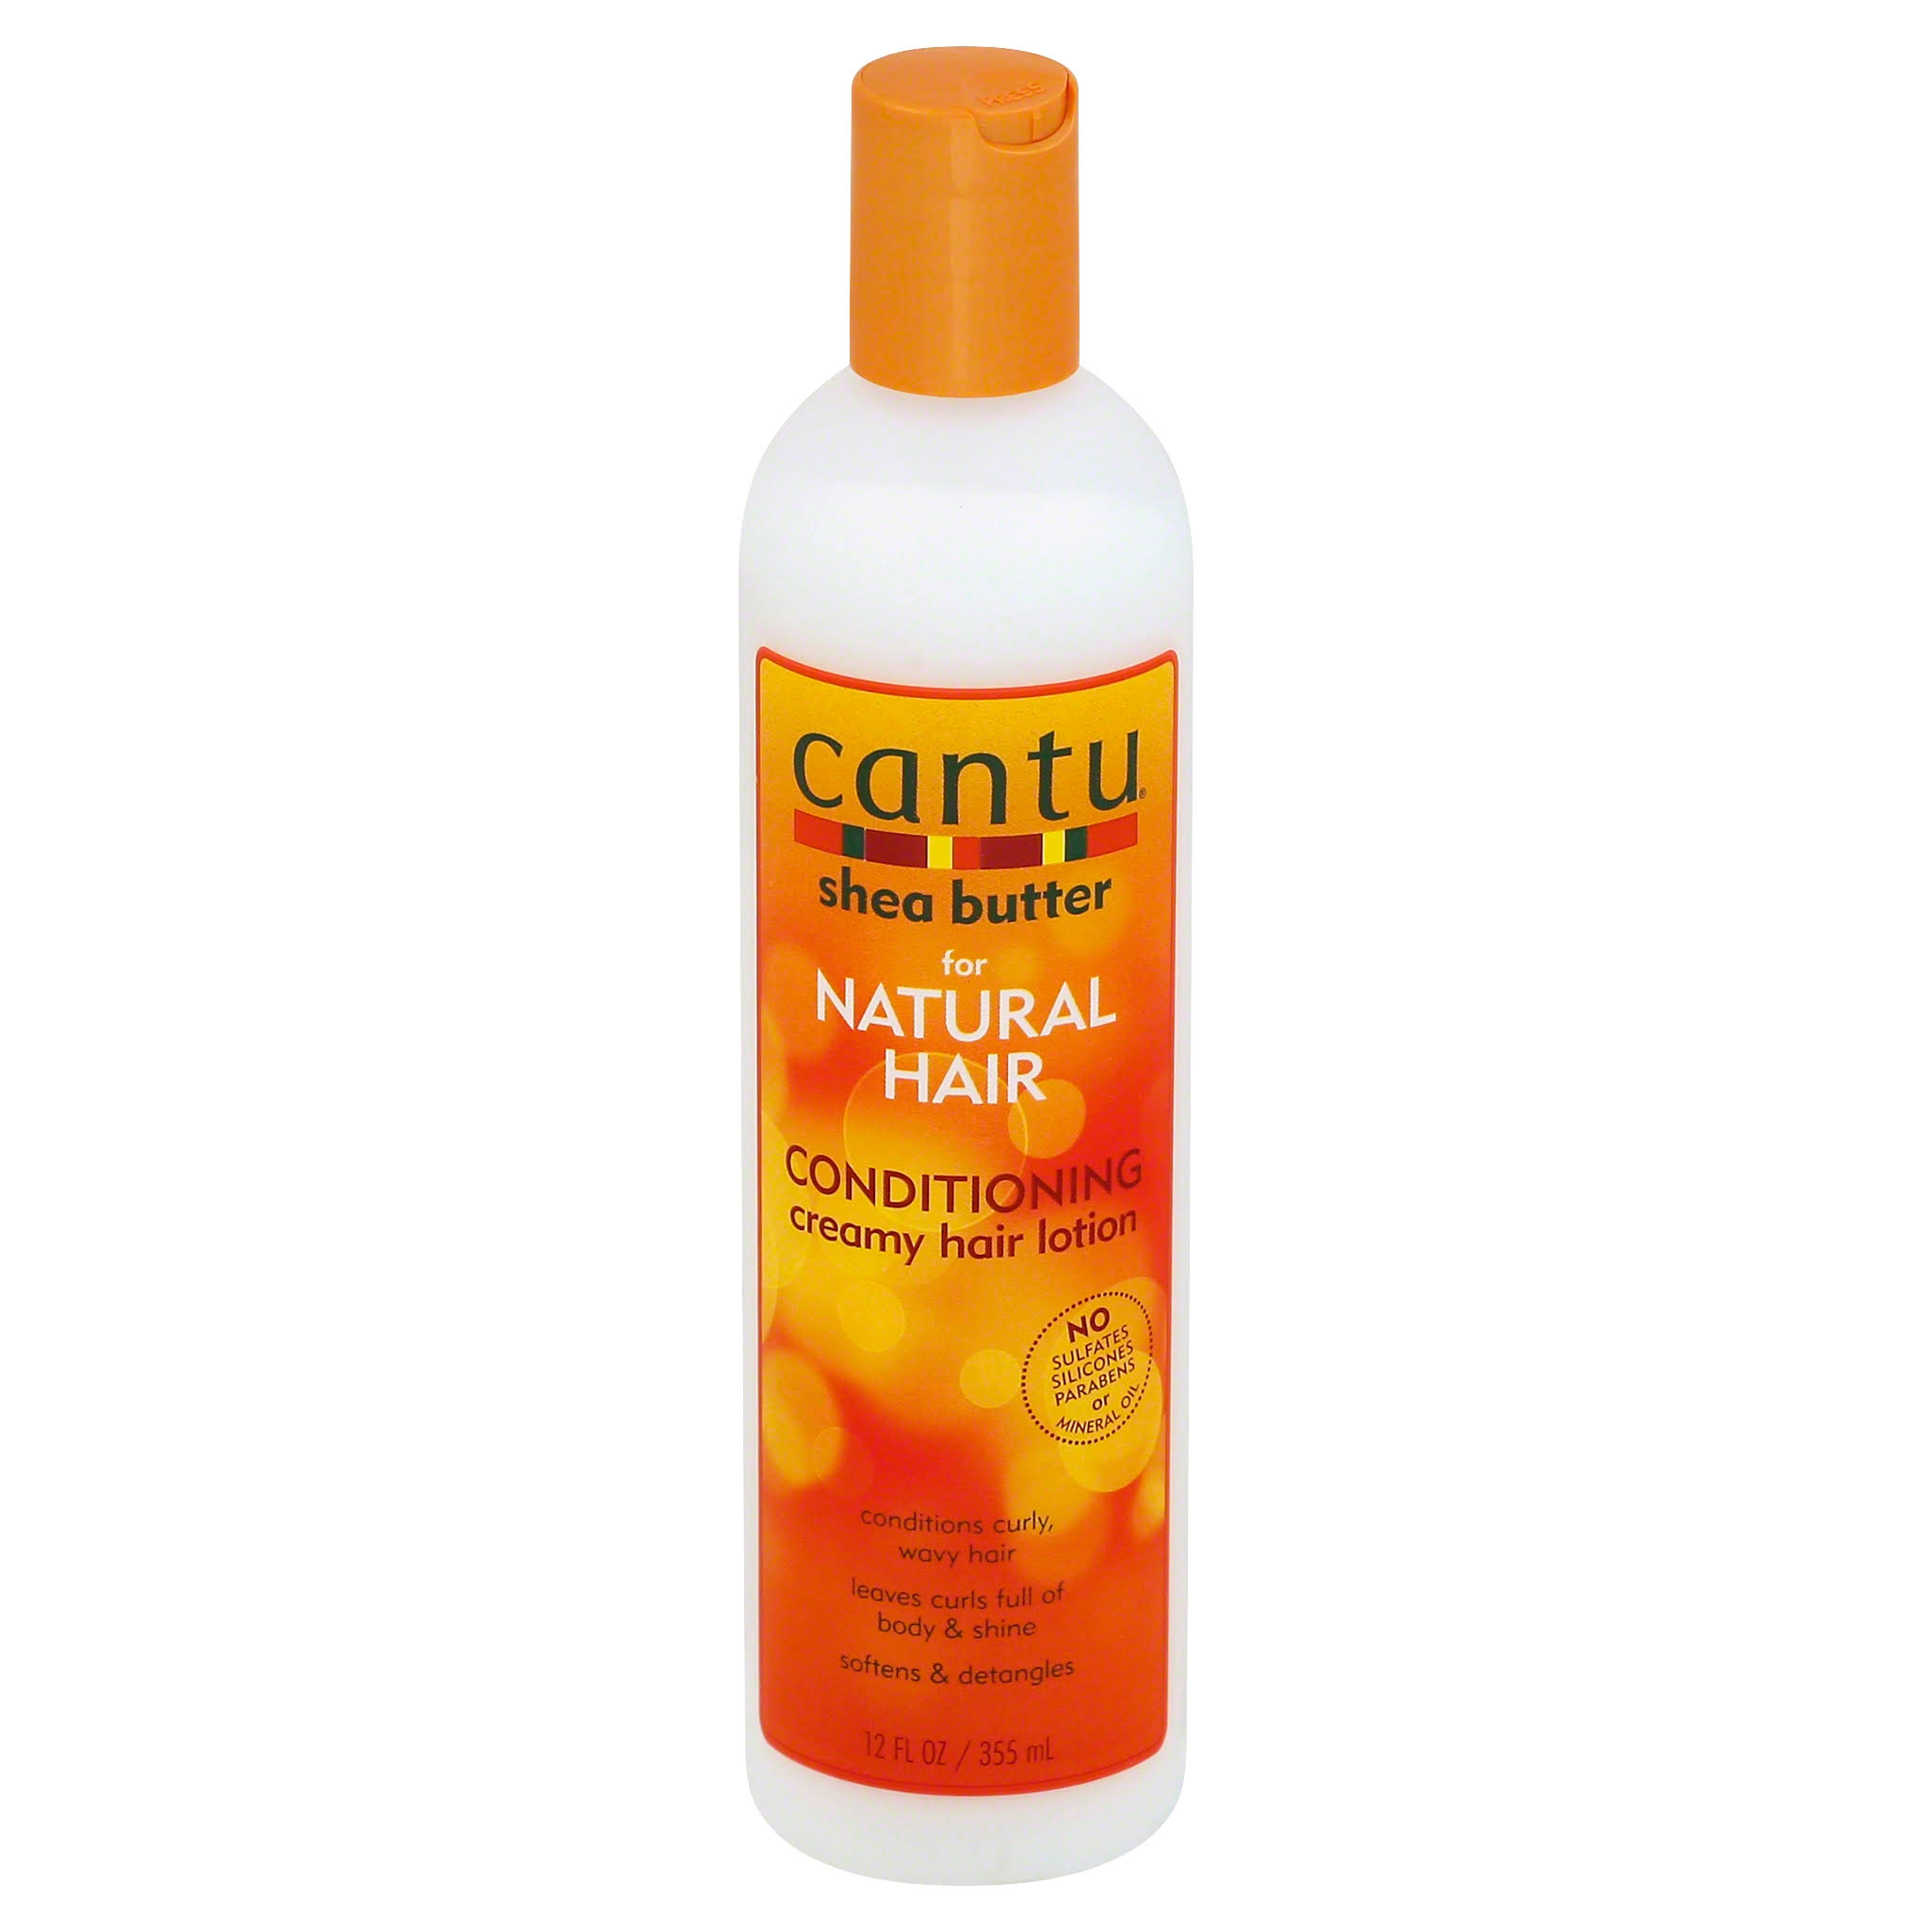 Cantu Shea Butter Conditioning Creamy Hair Lotion - 355ml